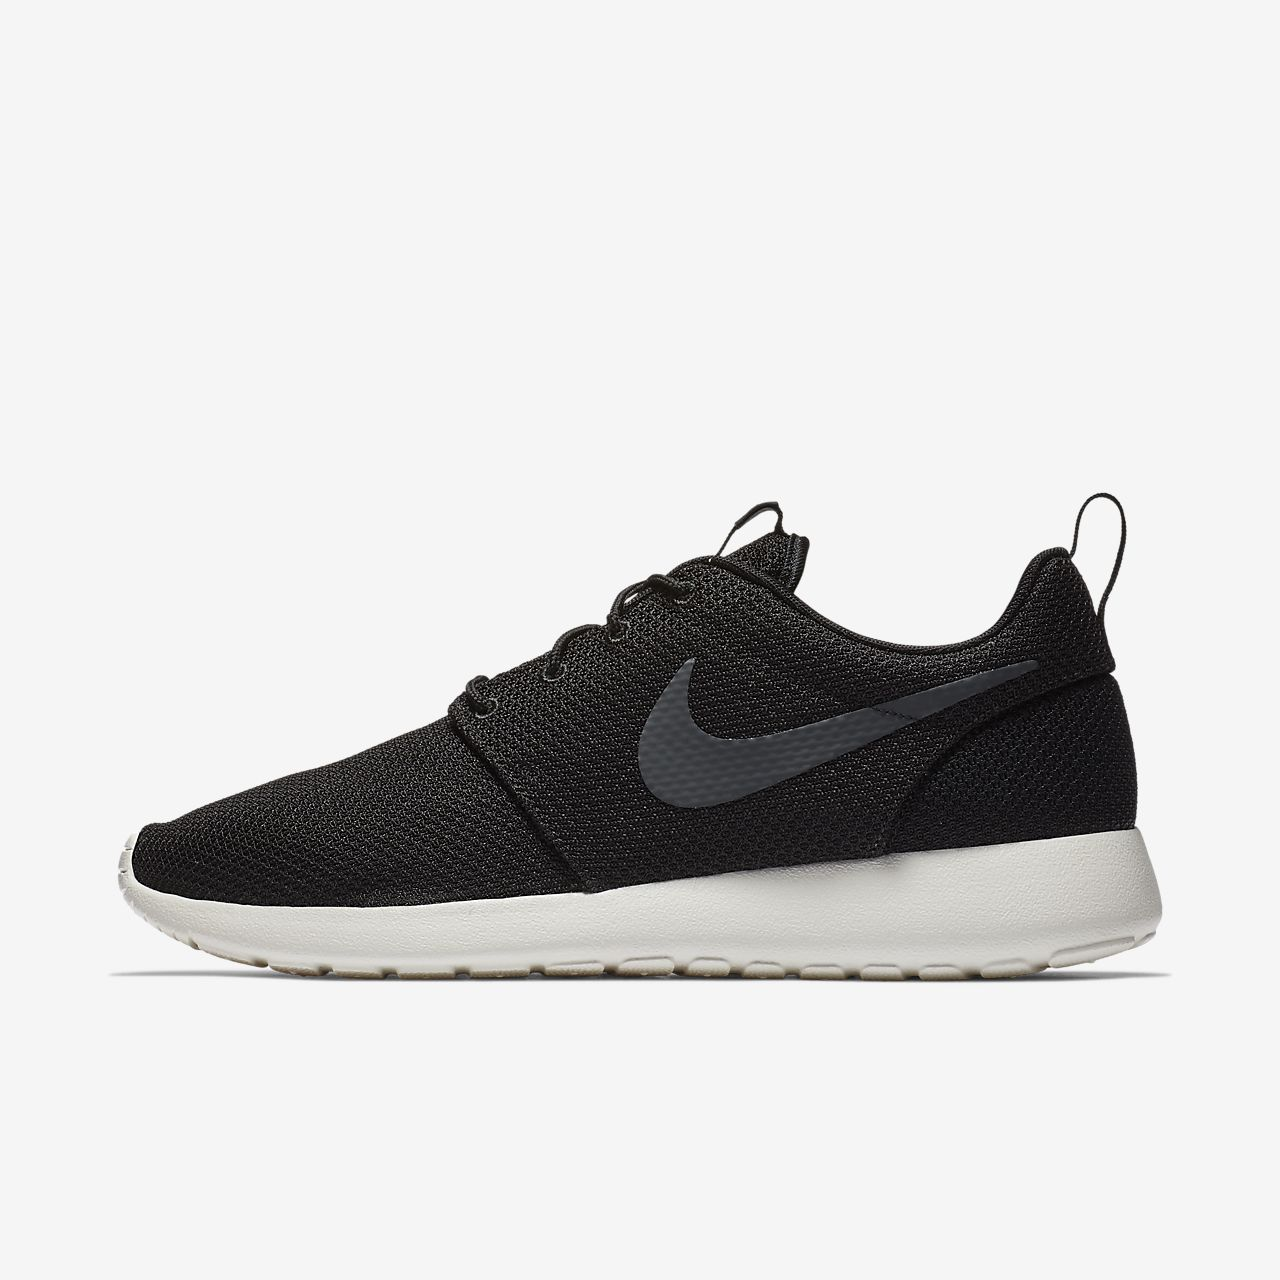 ... Nike Roshe One Men's Shoe